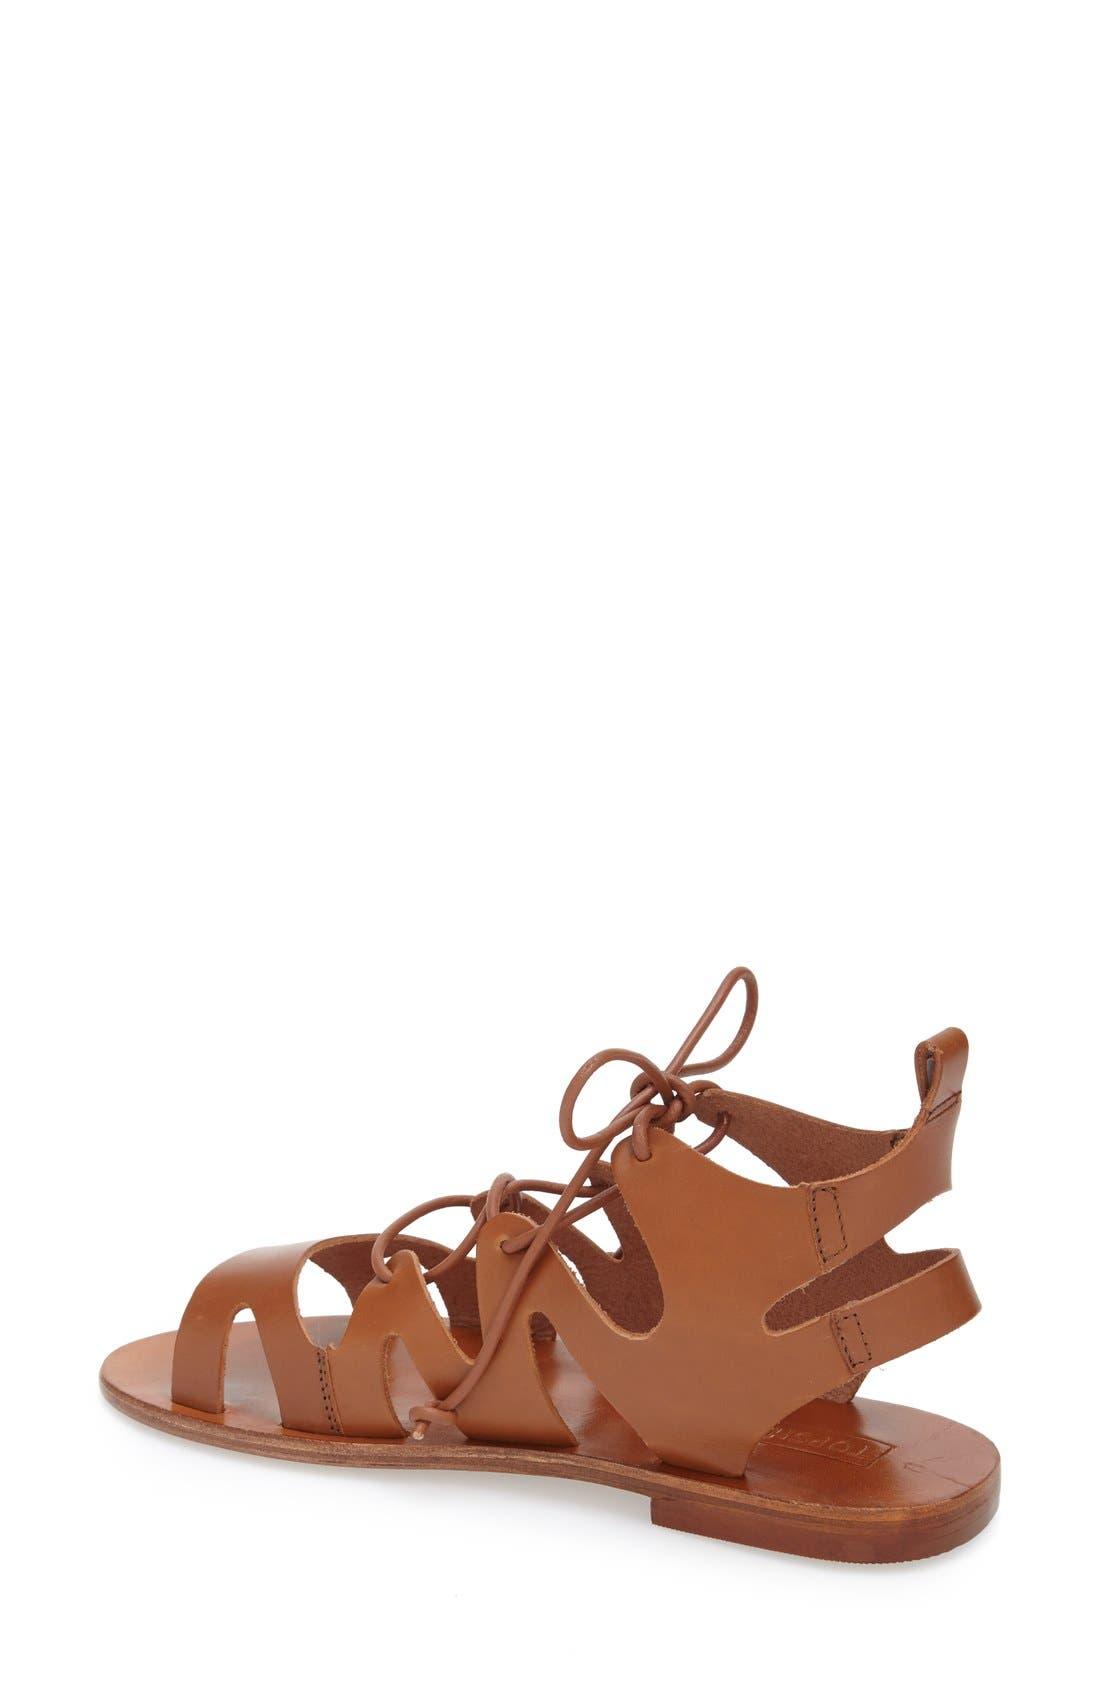 TOPSHOP, 'Fig' Cutout Lace-Up Gladiator Sandal, Alternate thumbnail 3, color, 210